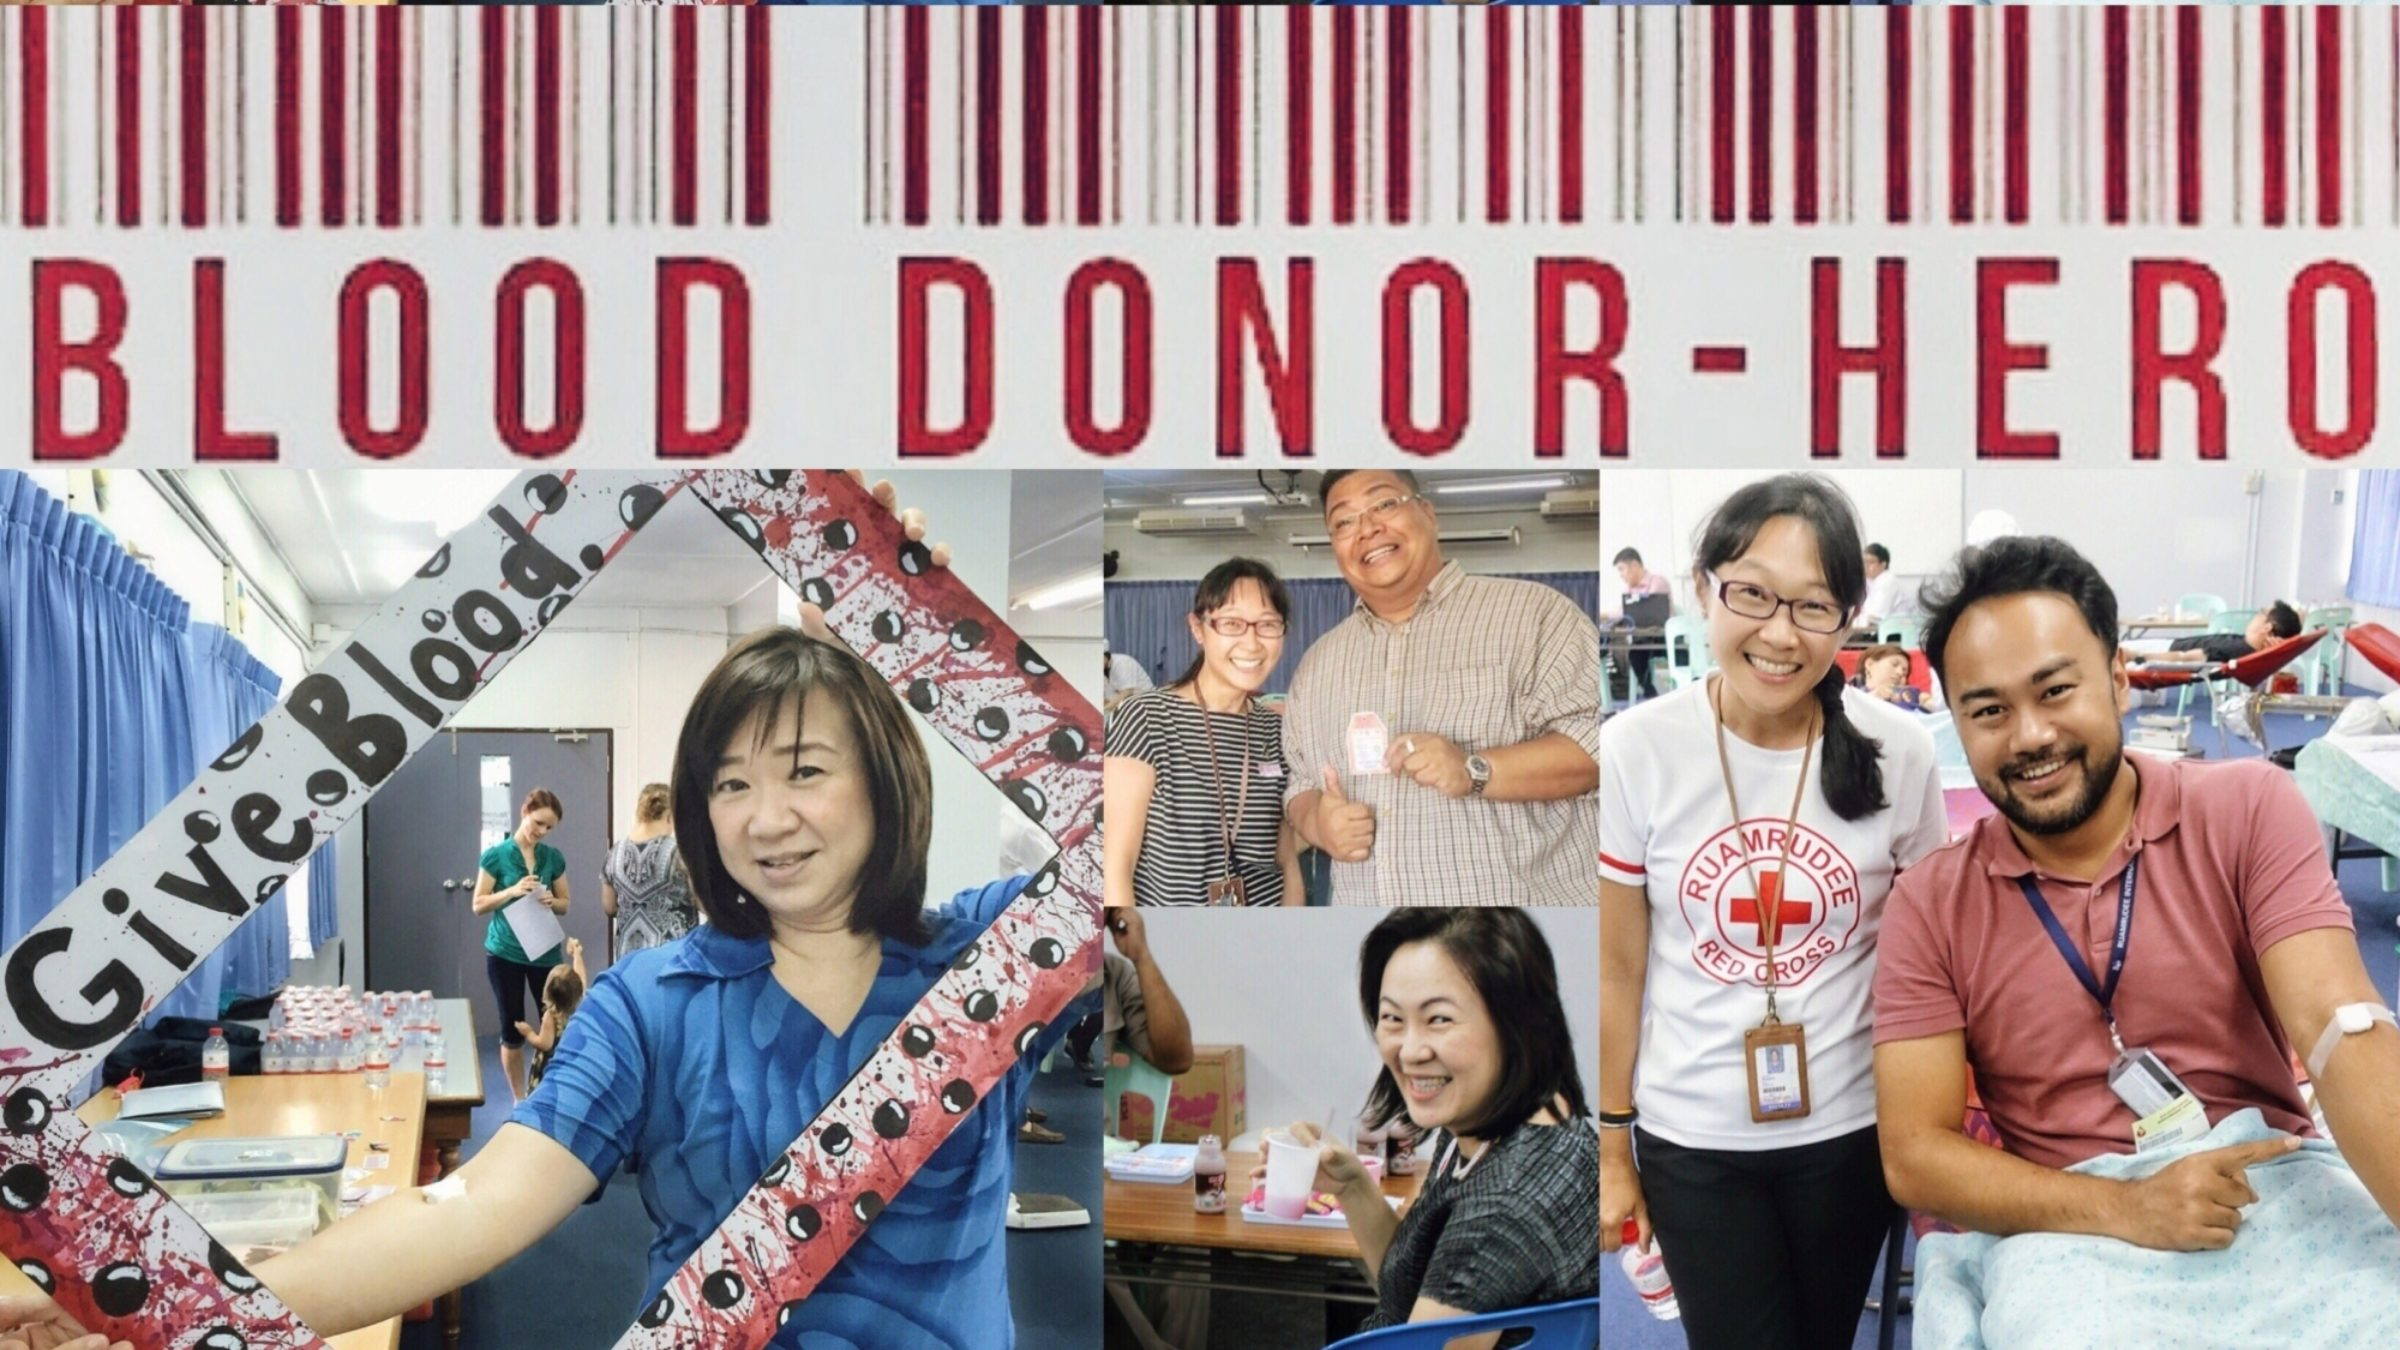 Alumni: Join the Blood Drive!